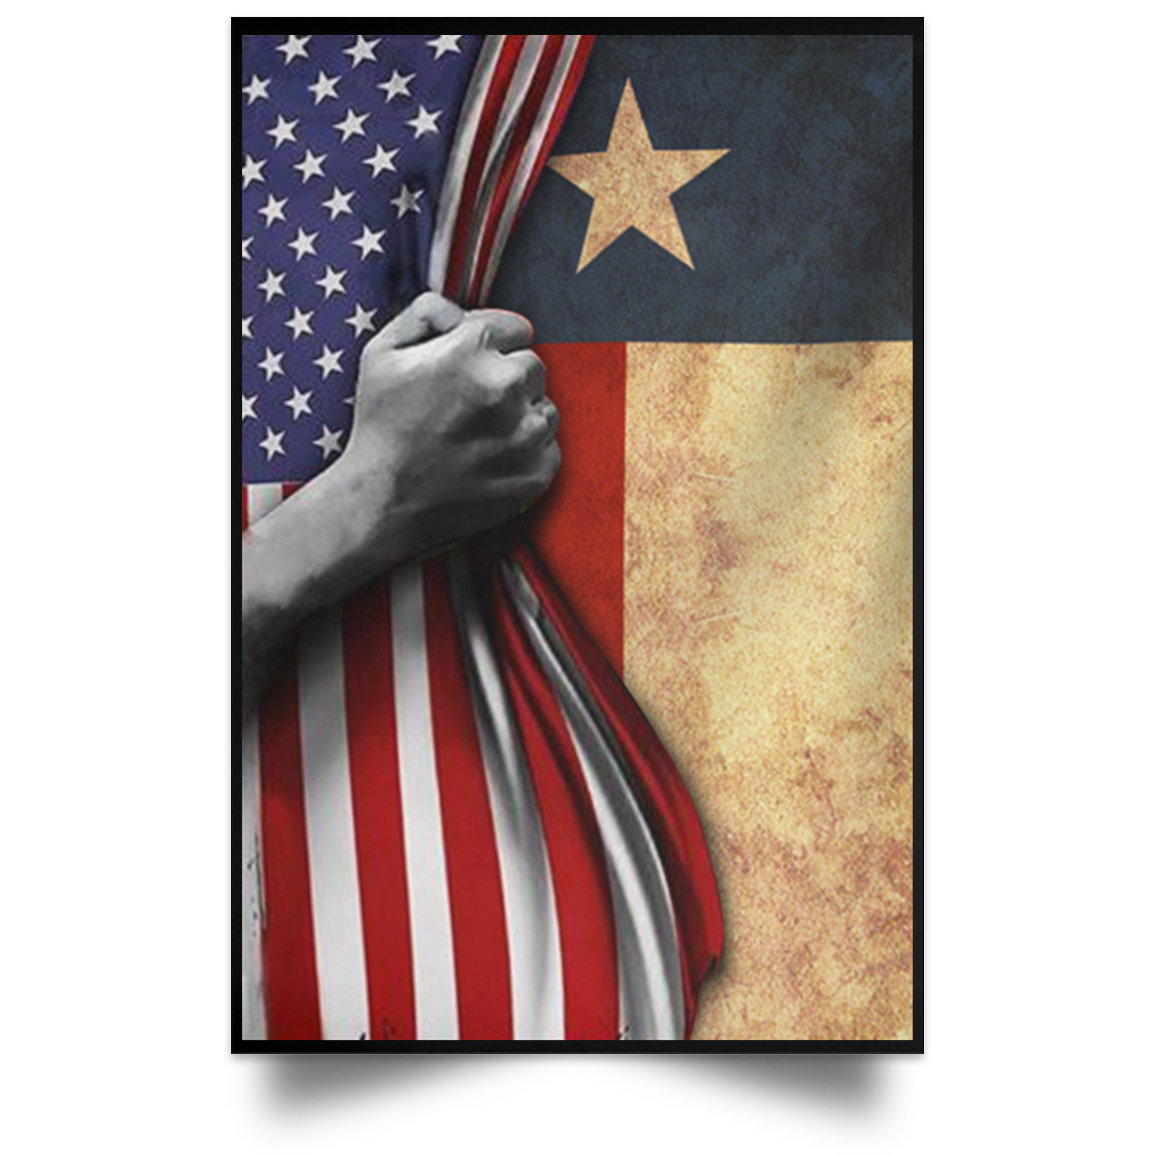 Texas Flag Inside American Flag Vertical Poster 4th Of July Poster Gift For Patriotic